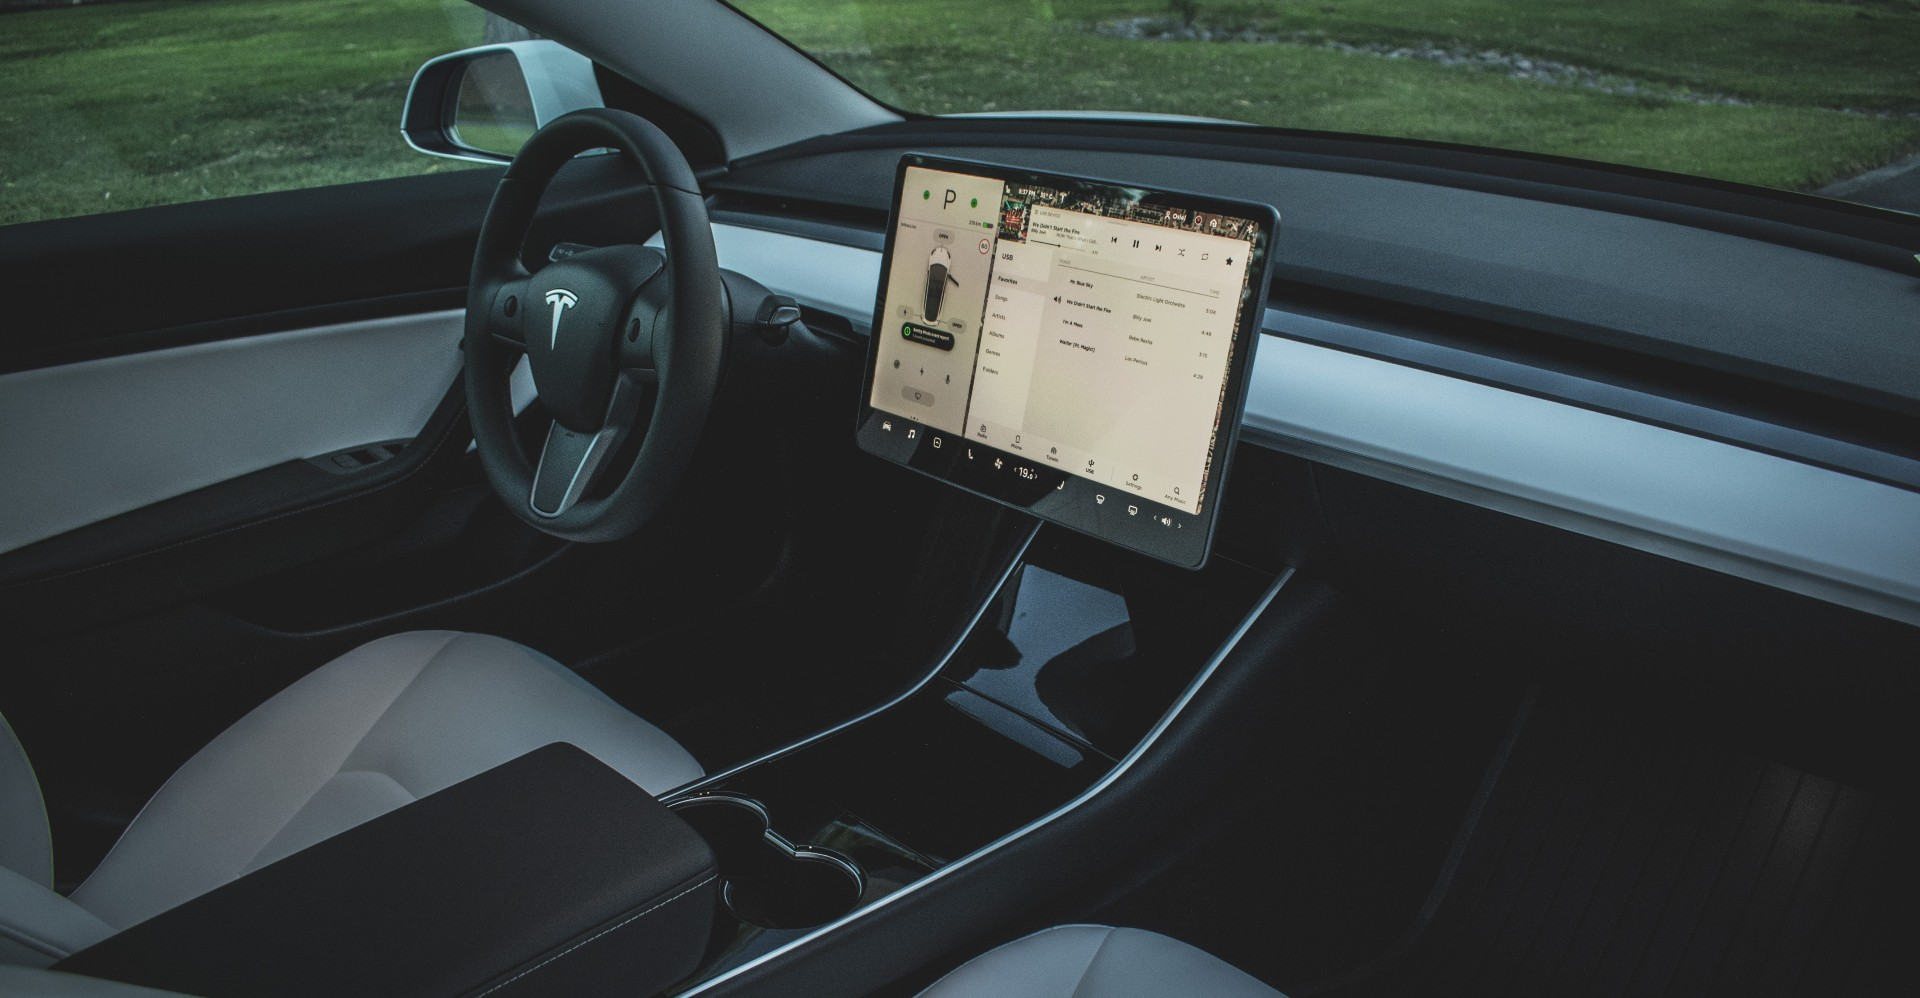 tesla-cabin-noise-reduction-upgrade-dsp-concepts-interview-1